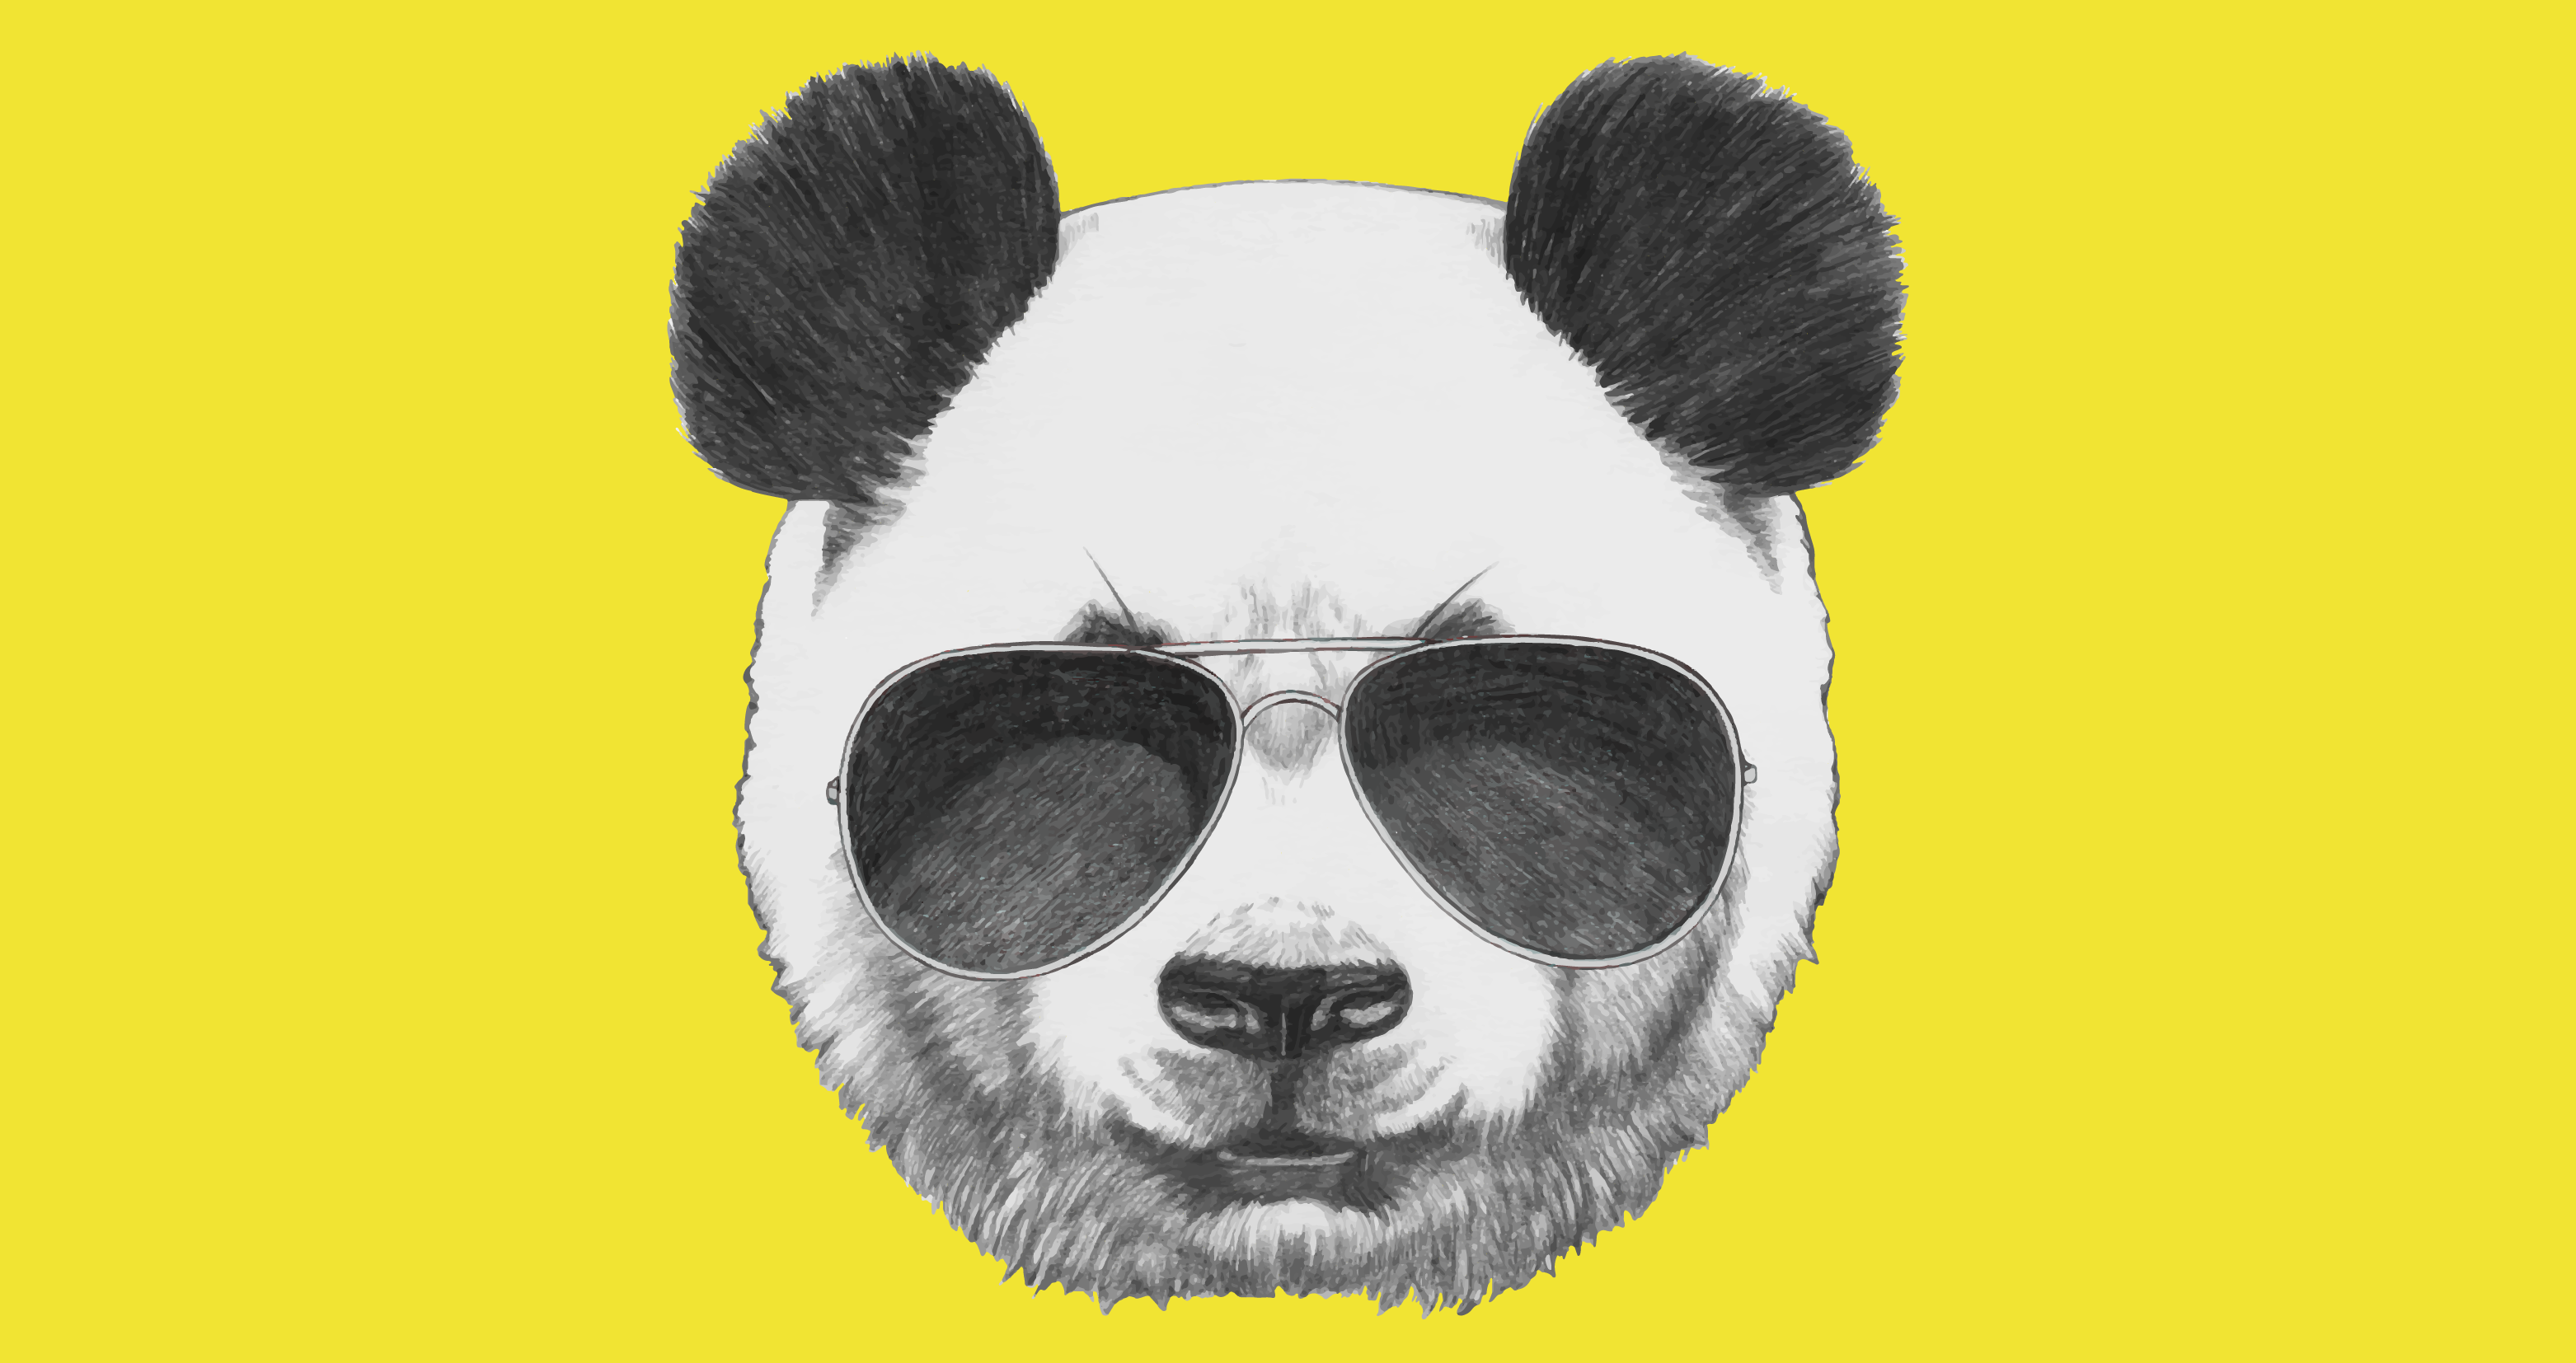 What's a Google Panda and How Does It Affect My SERP Ranking?